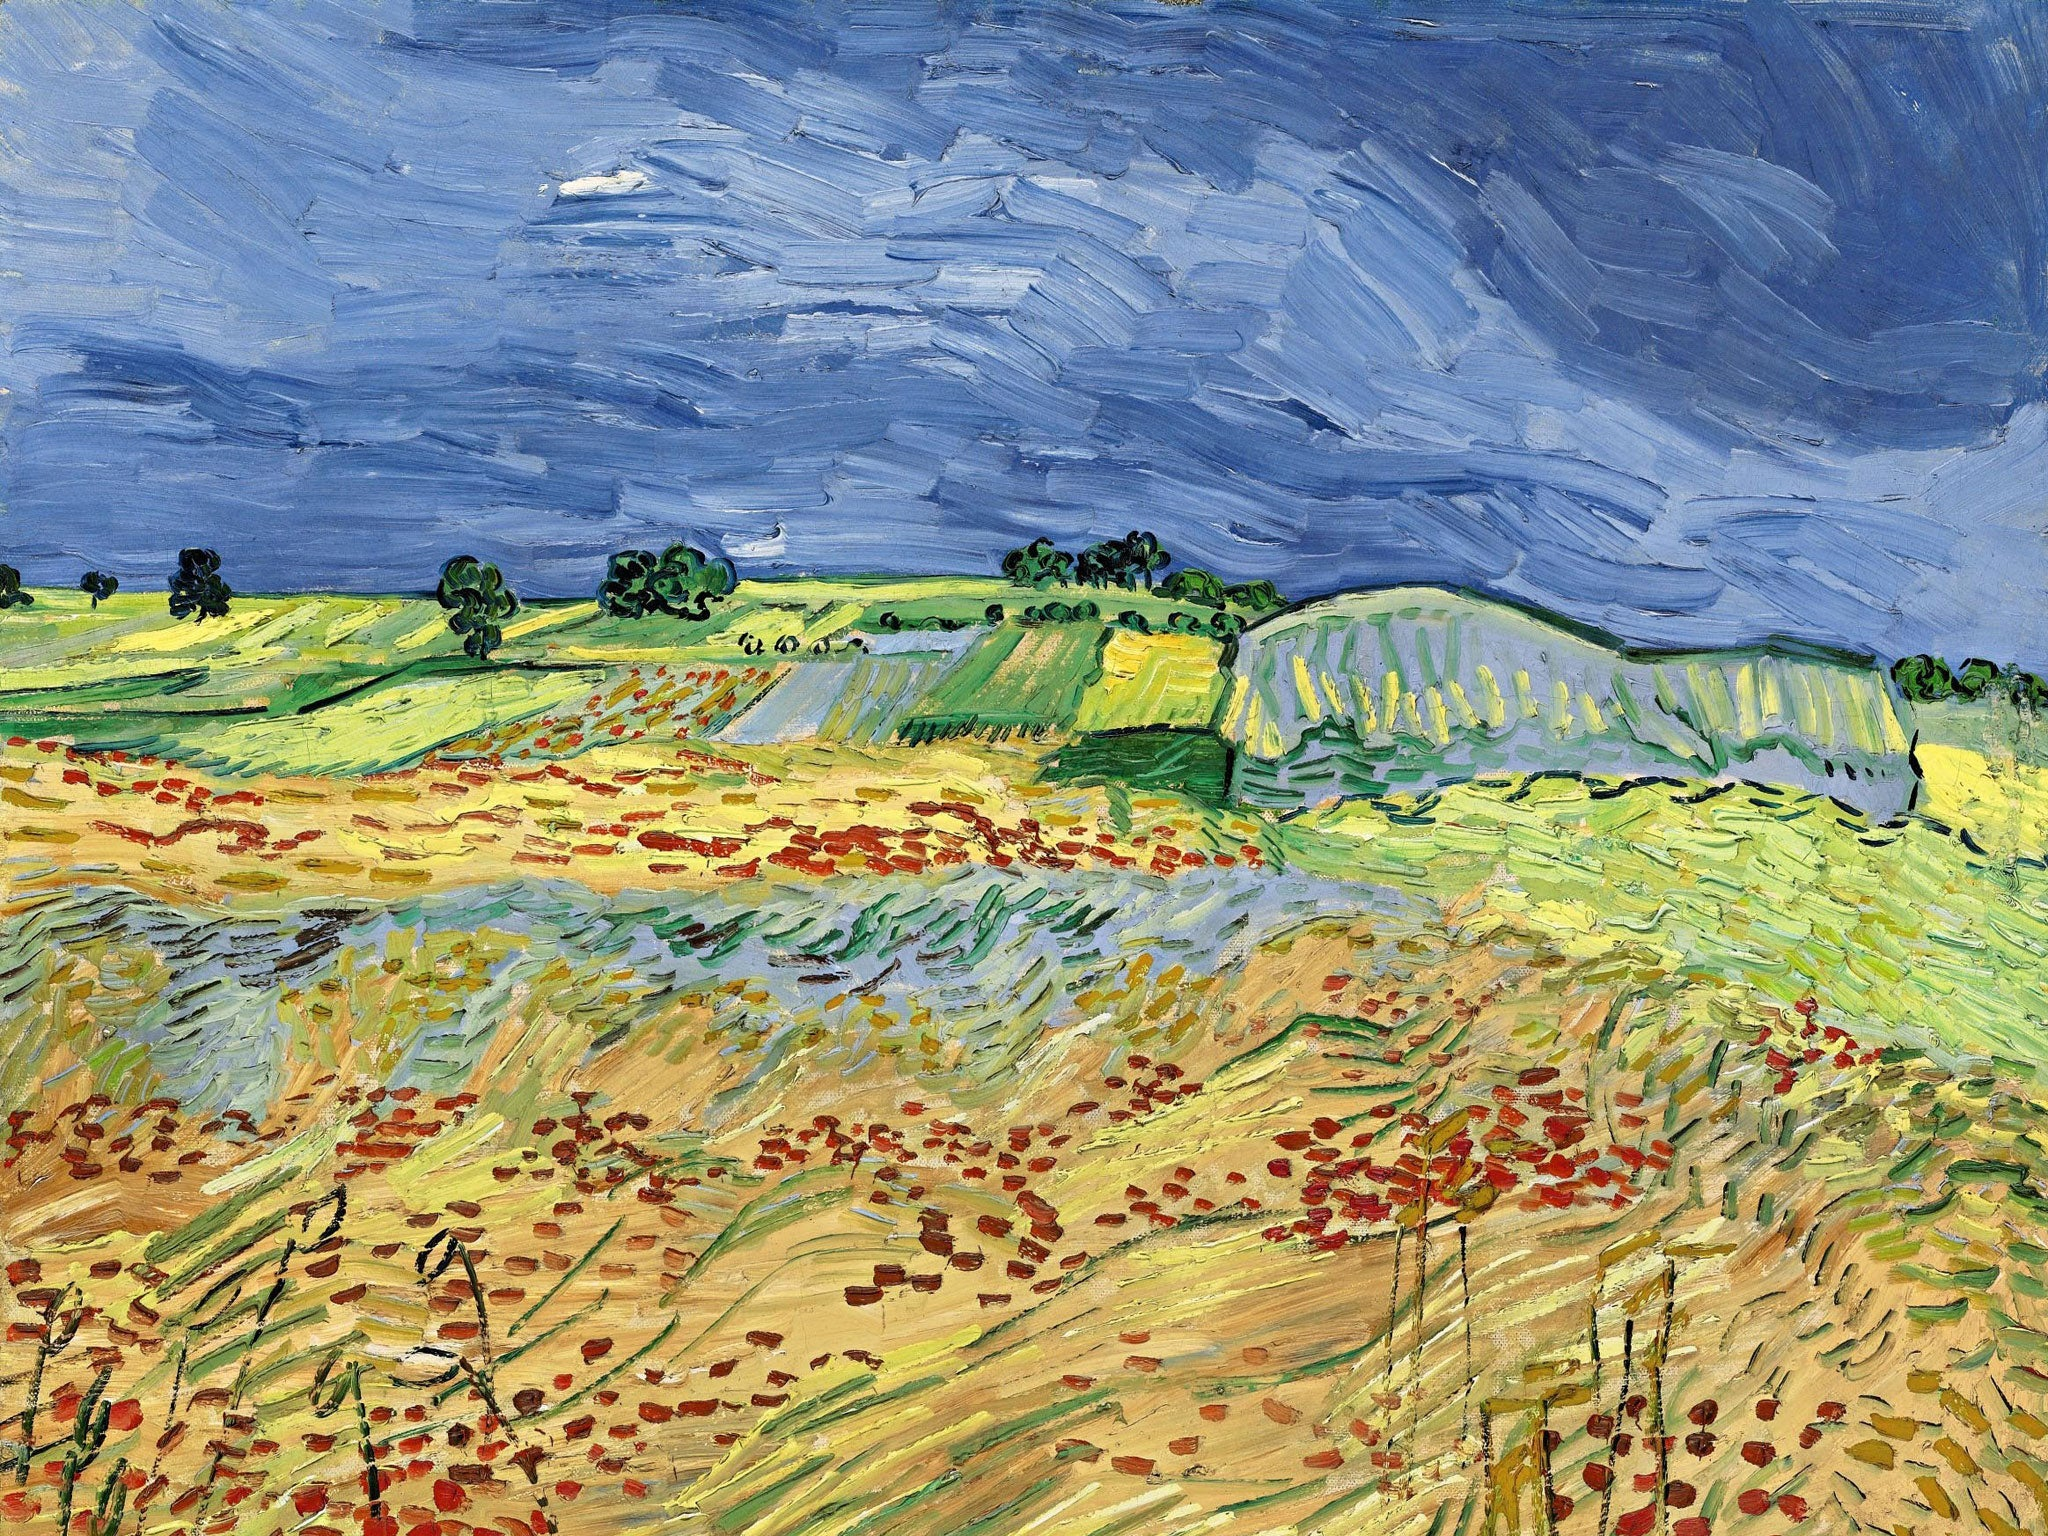 Did Vincent van Gogh commit suicide or was Dutch painter killed by an acquaintance?